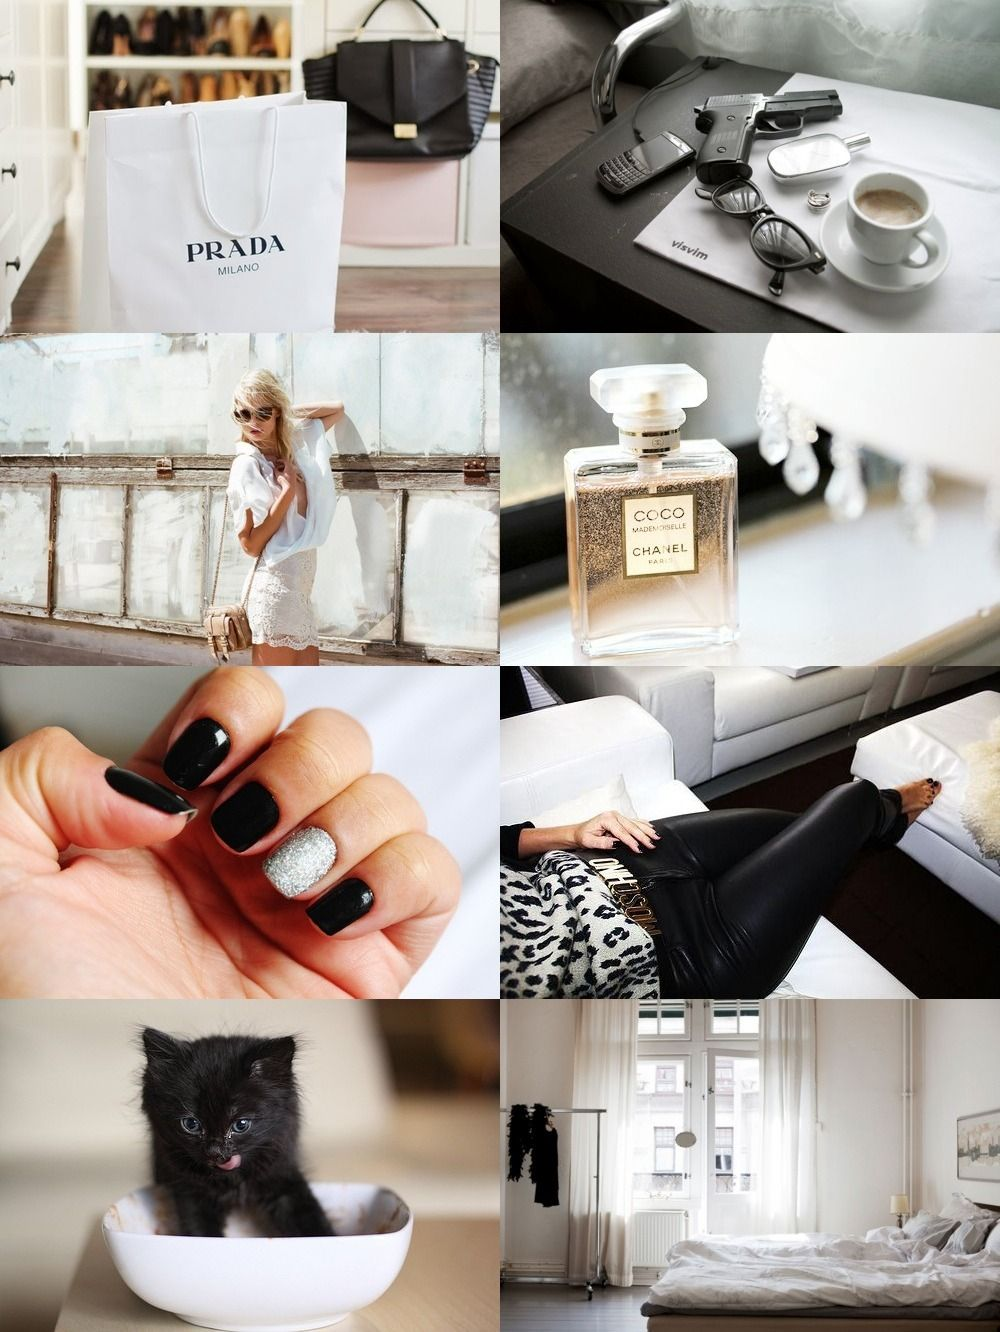 Marvel Aesthetics Black Cat Marvel Dc Aesthetic Pinterest